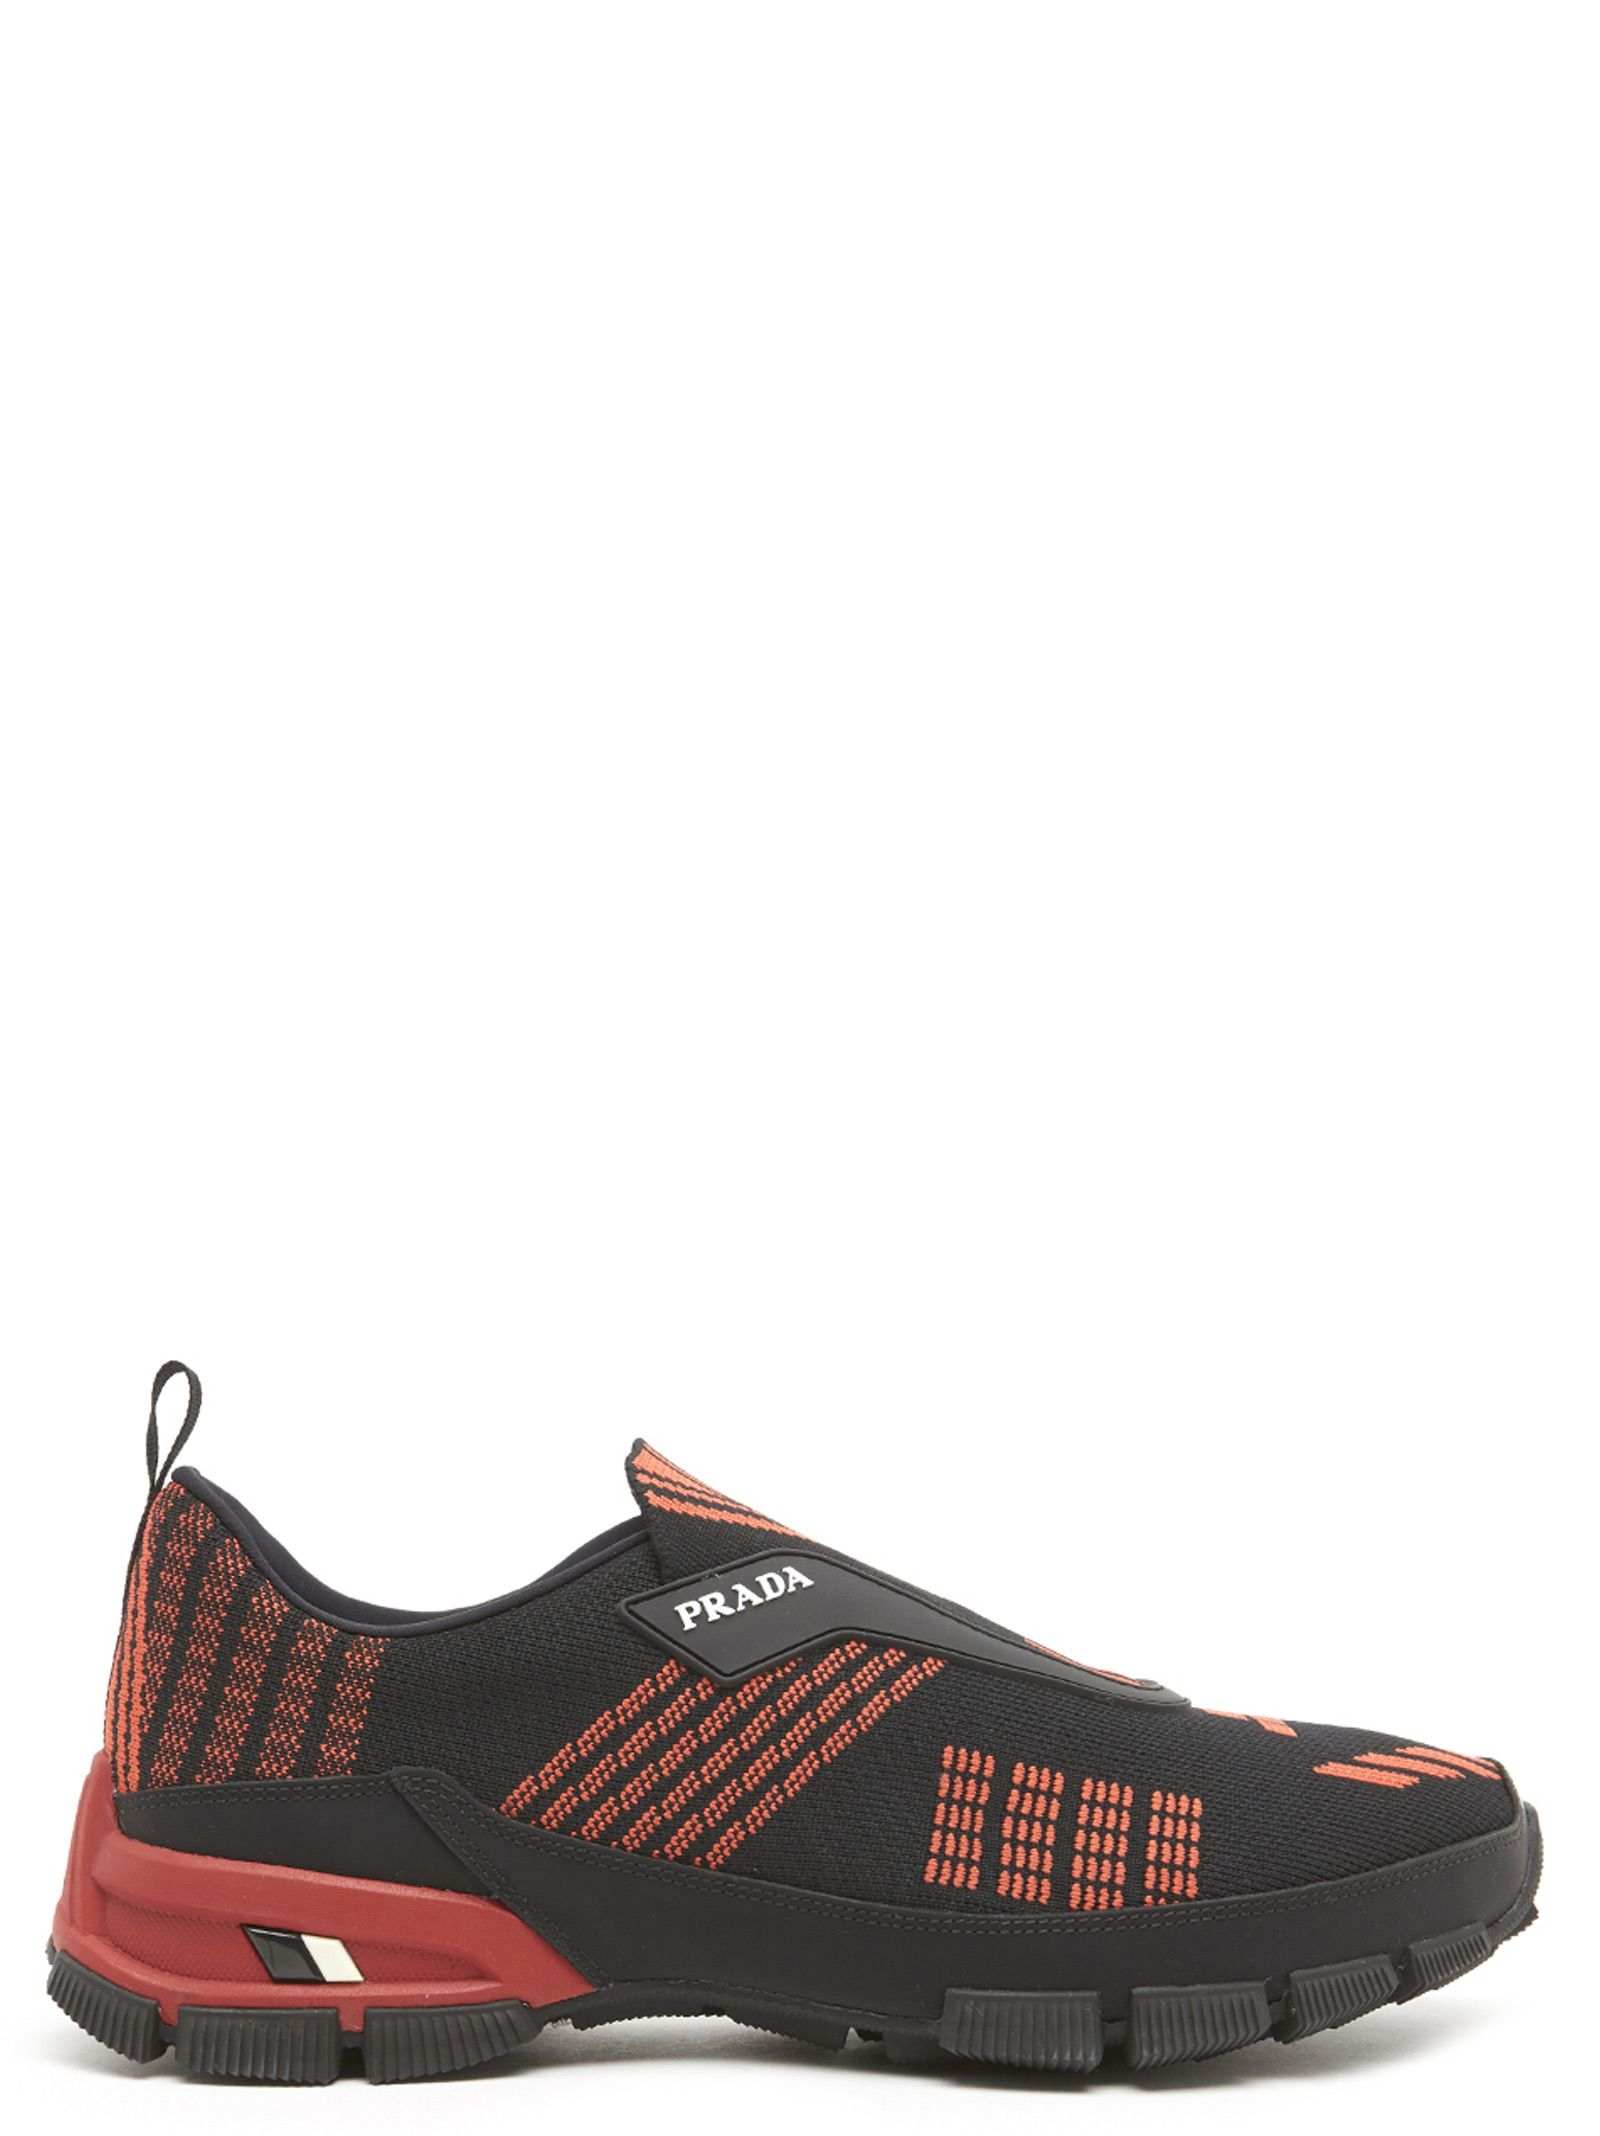 PRADA 'TECH COLOR' SHOES